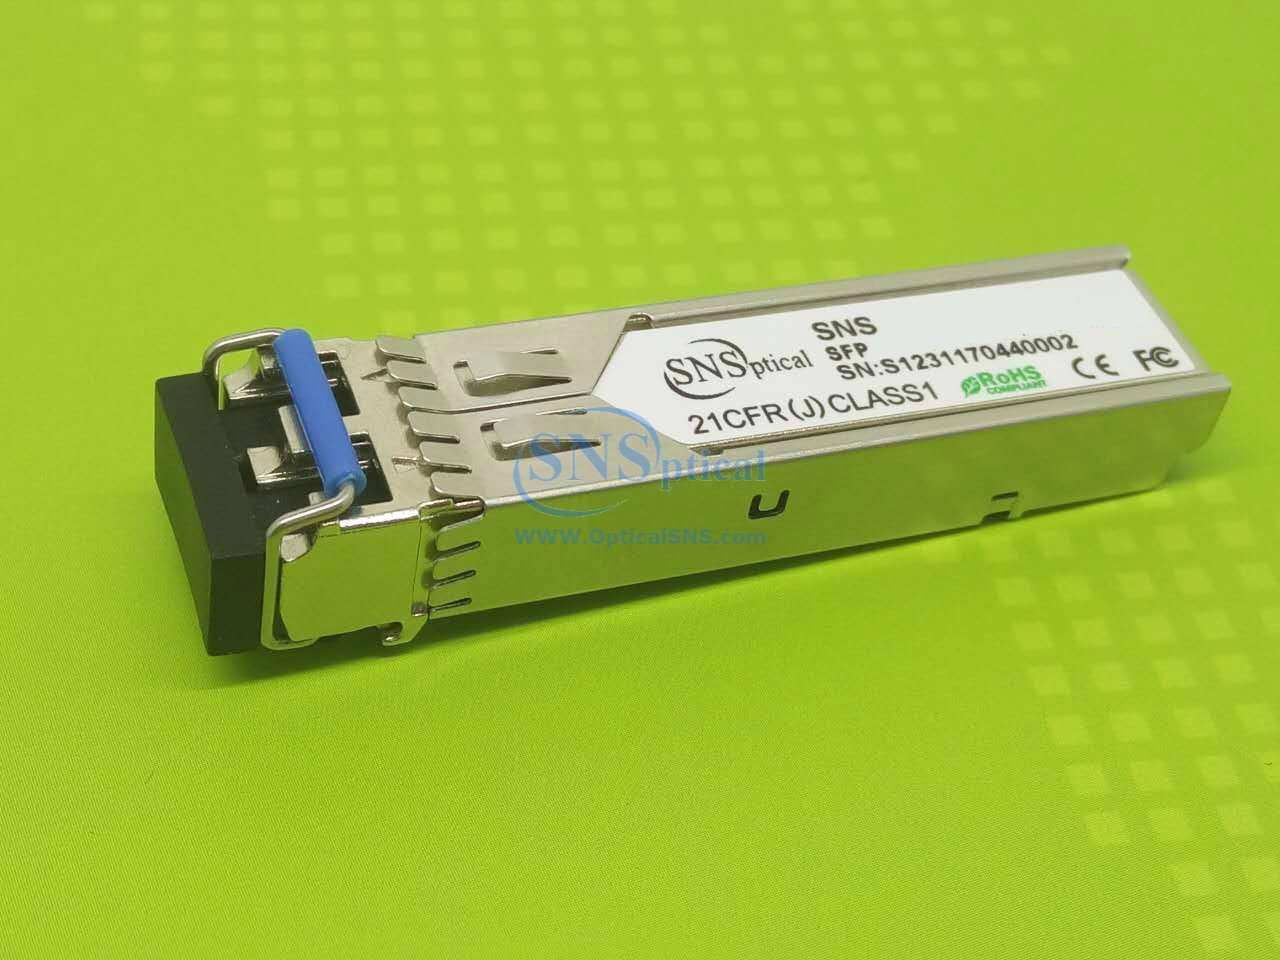 Optical SNS SNS TEG-MGBS40 Compatible with SFP with TRENDnet TEG-MGBS40 SFP Single-Mode LC Module, Connect with a standard SFP Slot, 1310nm Up to 40 Km (25 Miles)